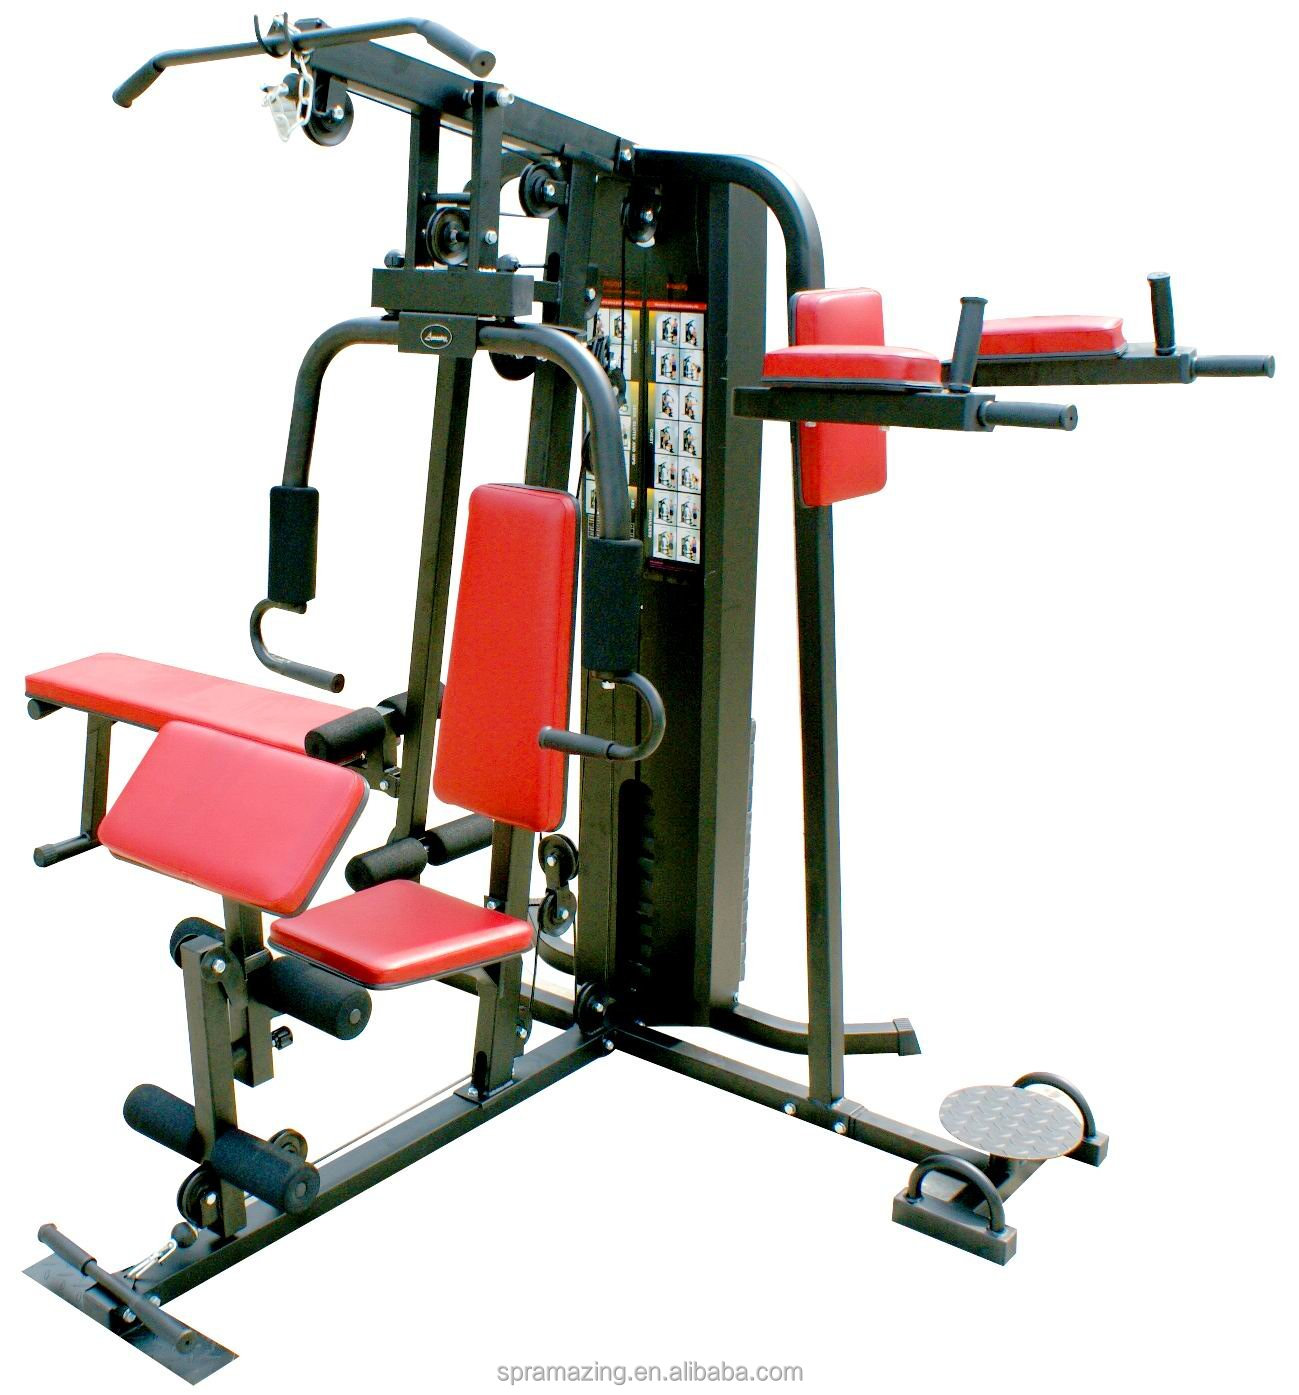 Home Exercise Equipment Price: 4 Station Multi Gym Equipment/ama-7000e Cheap Price Home